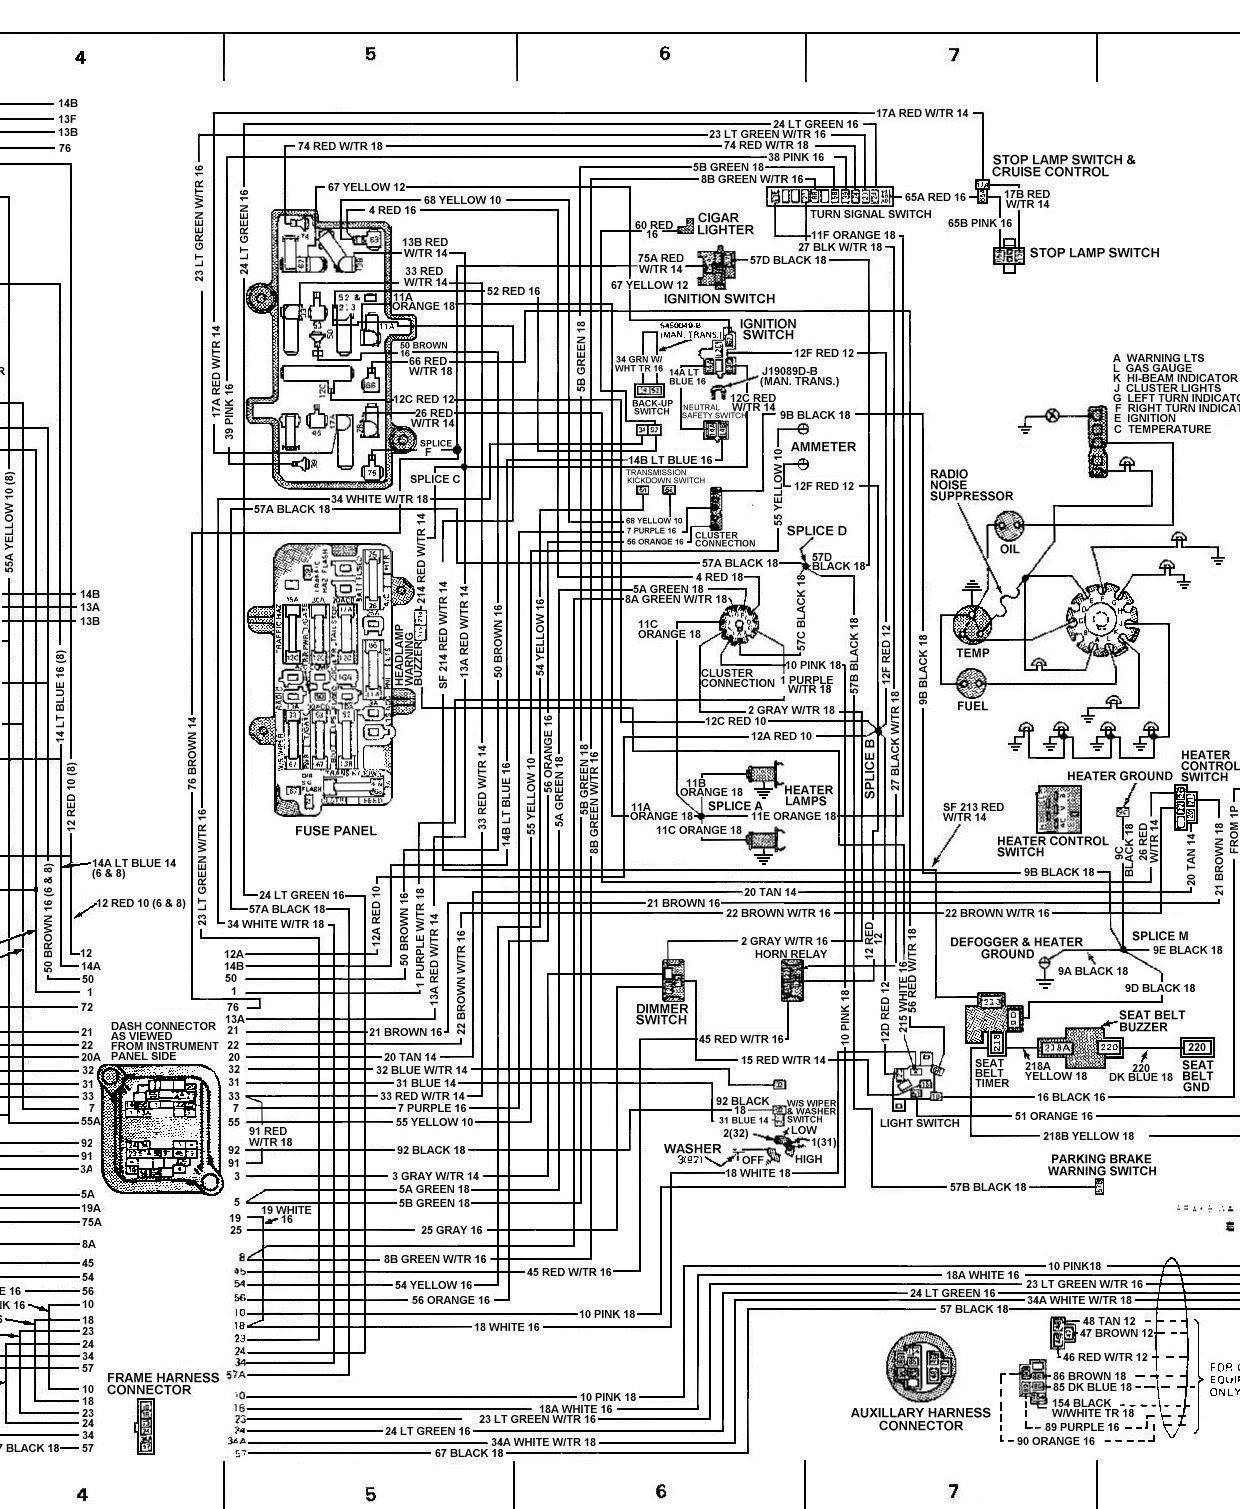 O Malley Honda >> Chevy Wiring Diagrams / Schematics | Avalanche 2004 1500 ...